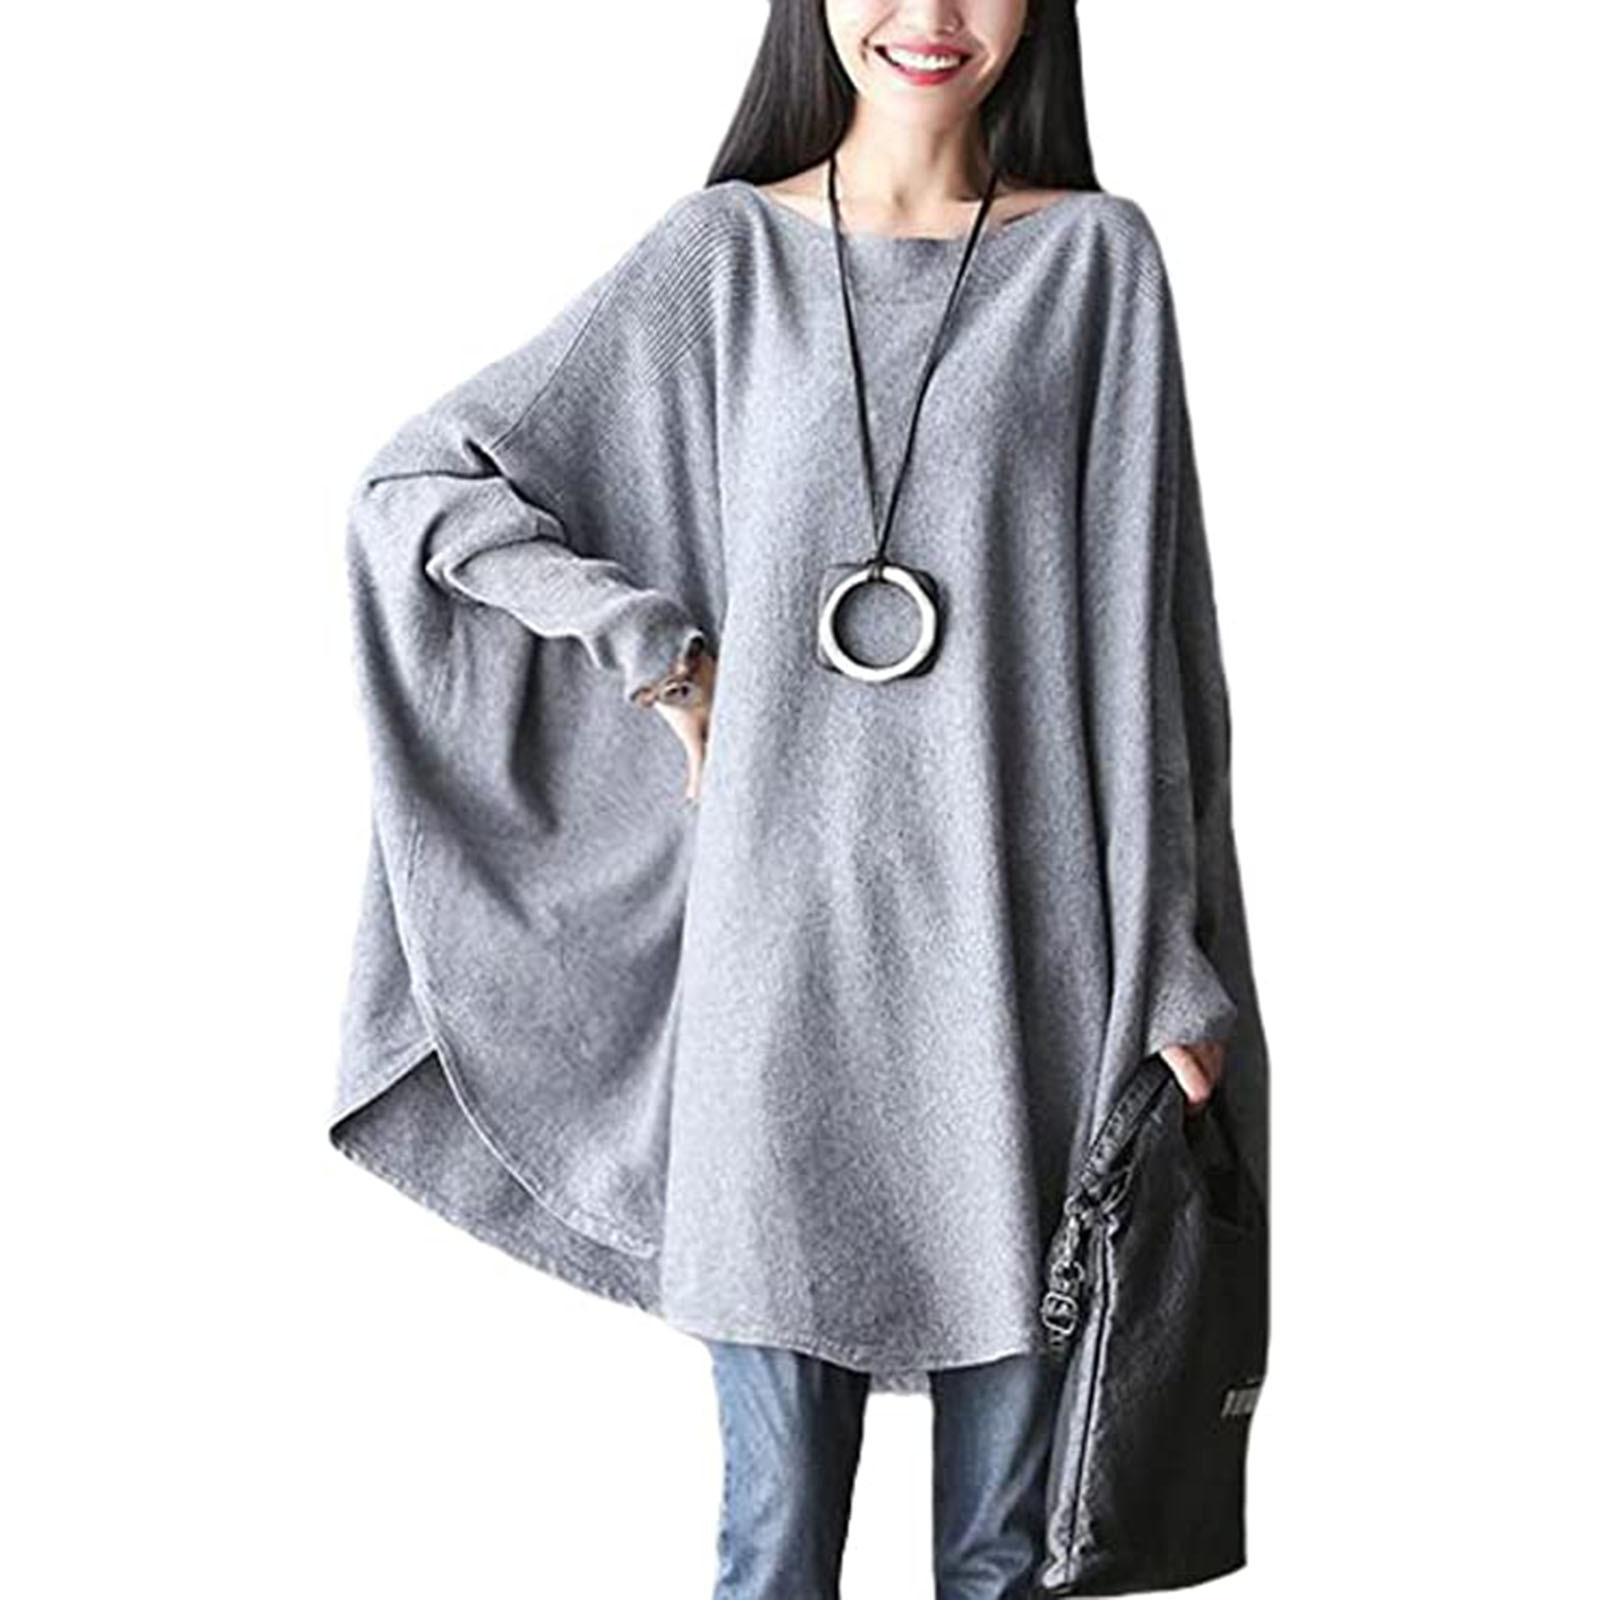 Fashion Blouse 2021 Women's Top Round Neck Batwing Sleeve Asymmetrical Tunic  blouses blusas mujer рубашка женская